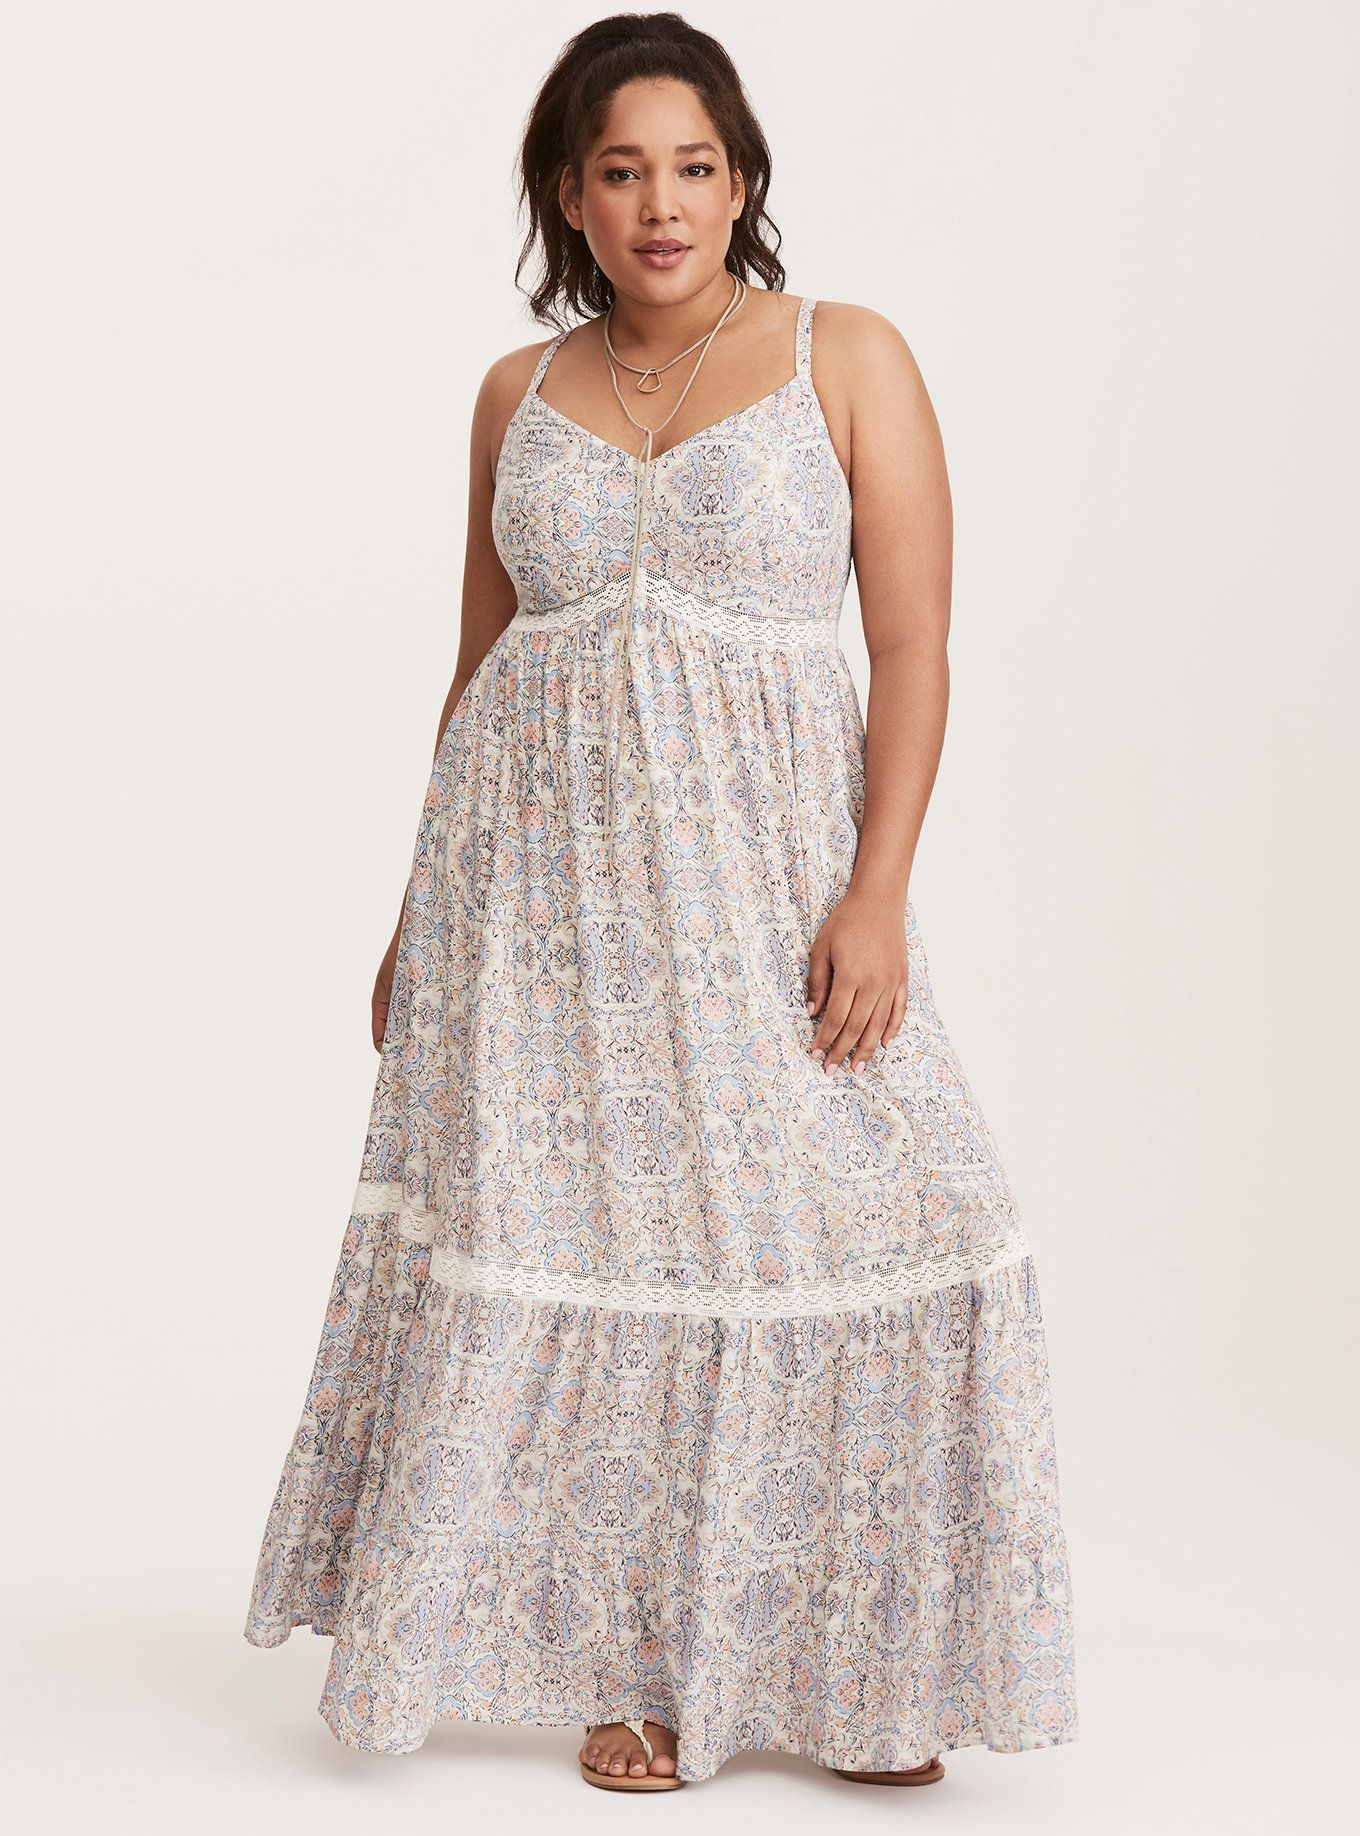 Tile Print Lace Inset Tiered Challis Maxi Dress In 2020 Dresses Plus Size Maxi Dresses Maxi Dress [ 1836 x 1360 Pixel ]